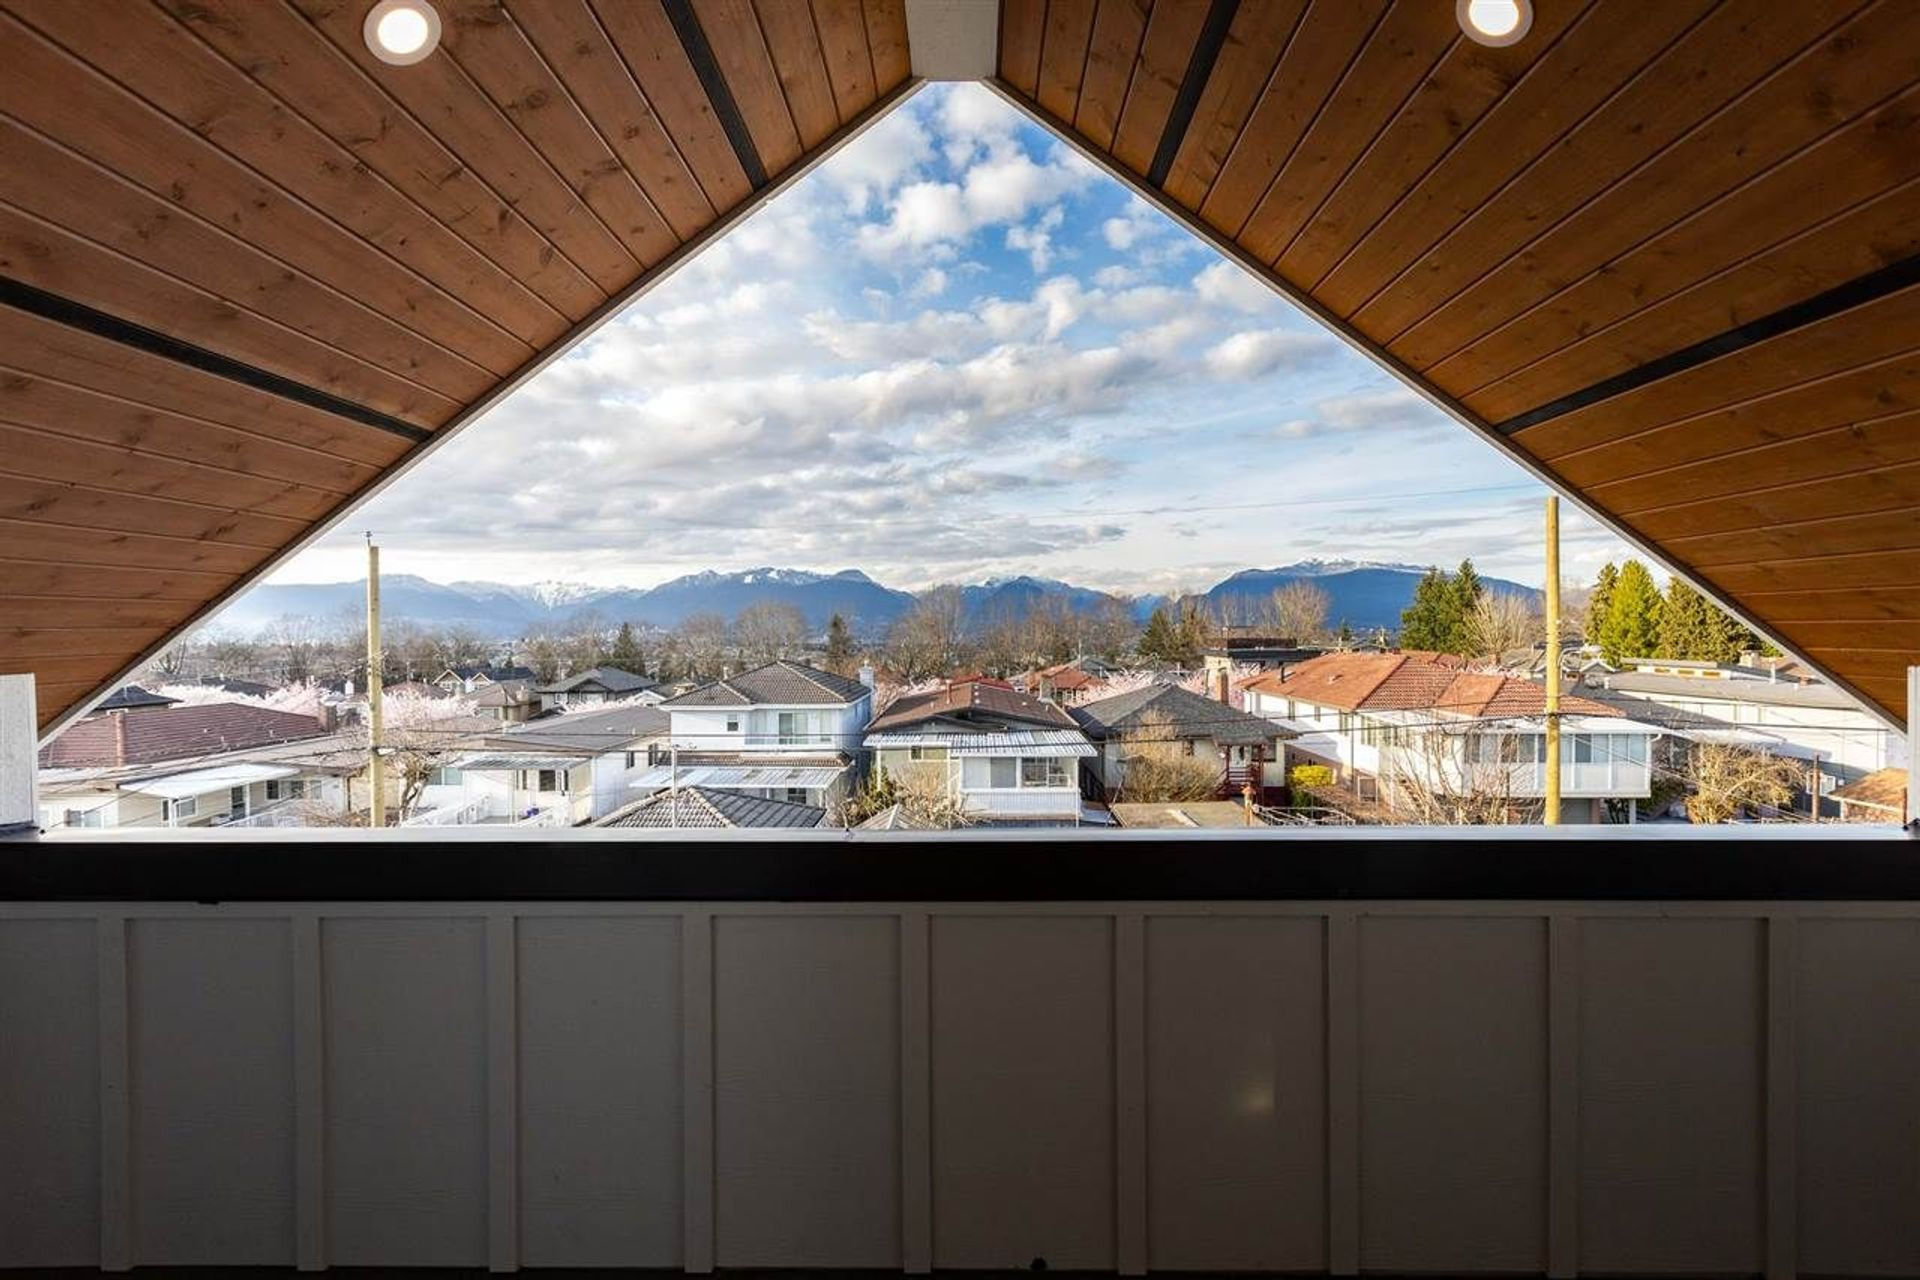 3439-e-24th-avenue-renfrew-heights-vancouver-east-24 at 3439 E 24th Avenue, Renfrew Heights, Vancouver East